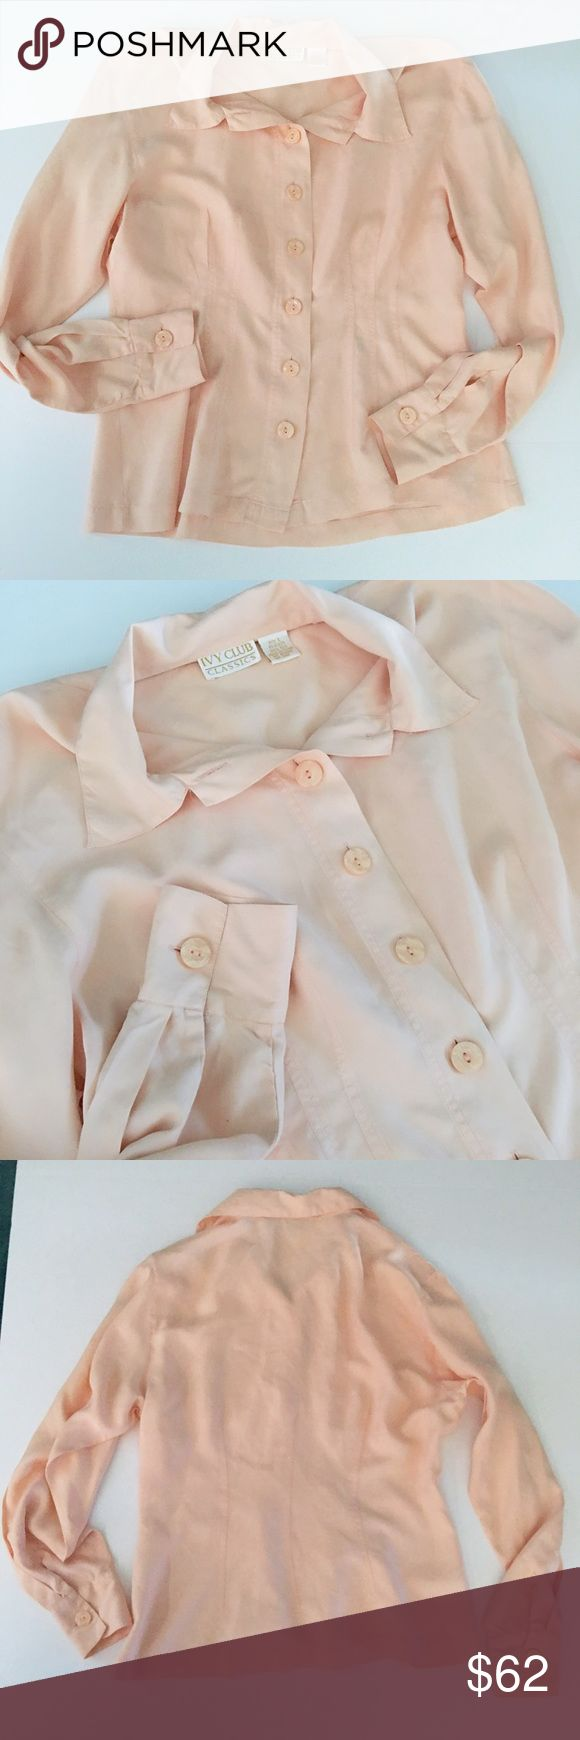 Peach 100% Silk Button-Down Peach 100% Silk Long-Sleeve Button-Down // sz L // Ivy Club Classics brand // super amazingly soft and Flowy // slimming darting on front and back // perfect to put under a blazer for work // non-smoking home // measurements available upon request // not my size. Can't model. // Offers Welcome! // 20% off 3+ Bundles // 10.29.34. {career wear/office/work attire/business wear/business casual/job clothes} Ivy Classics Tops Button Down Shirts